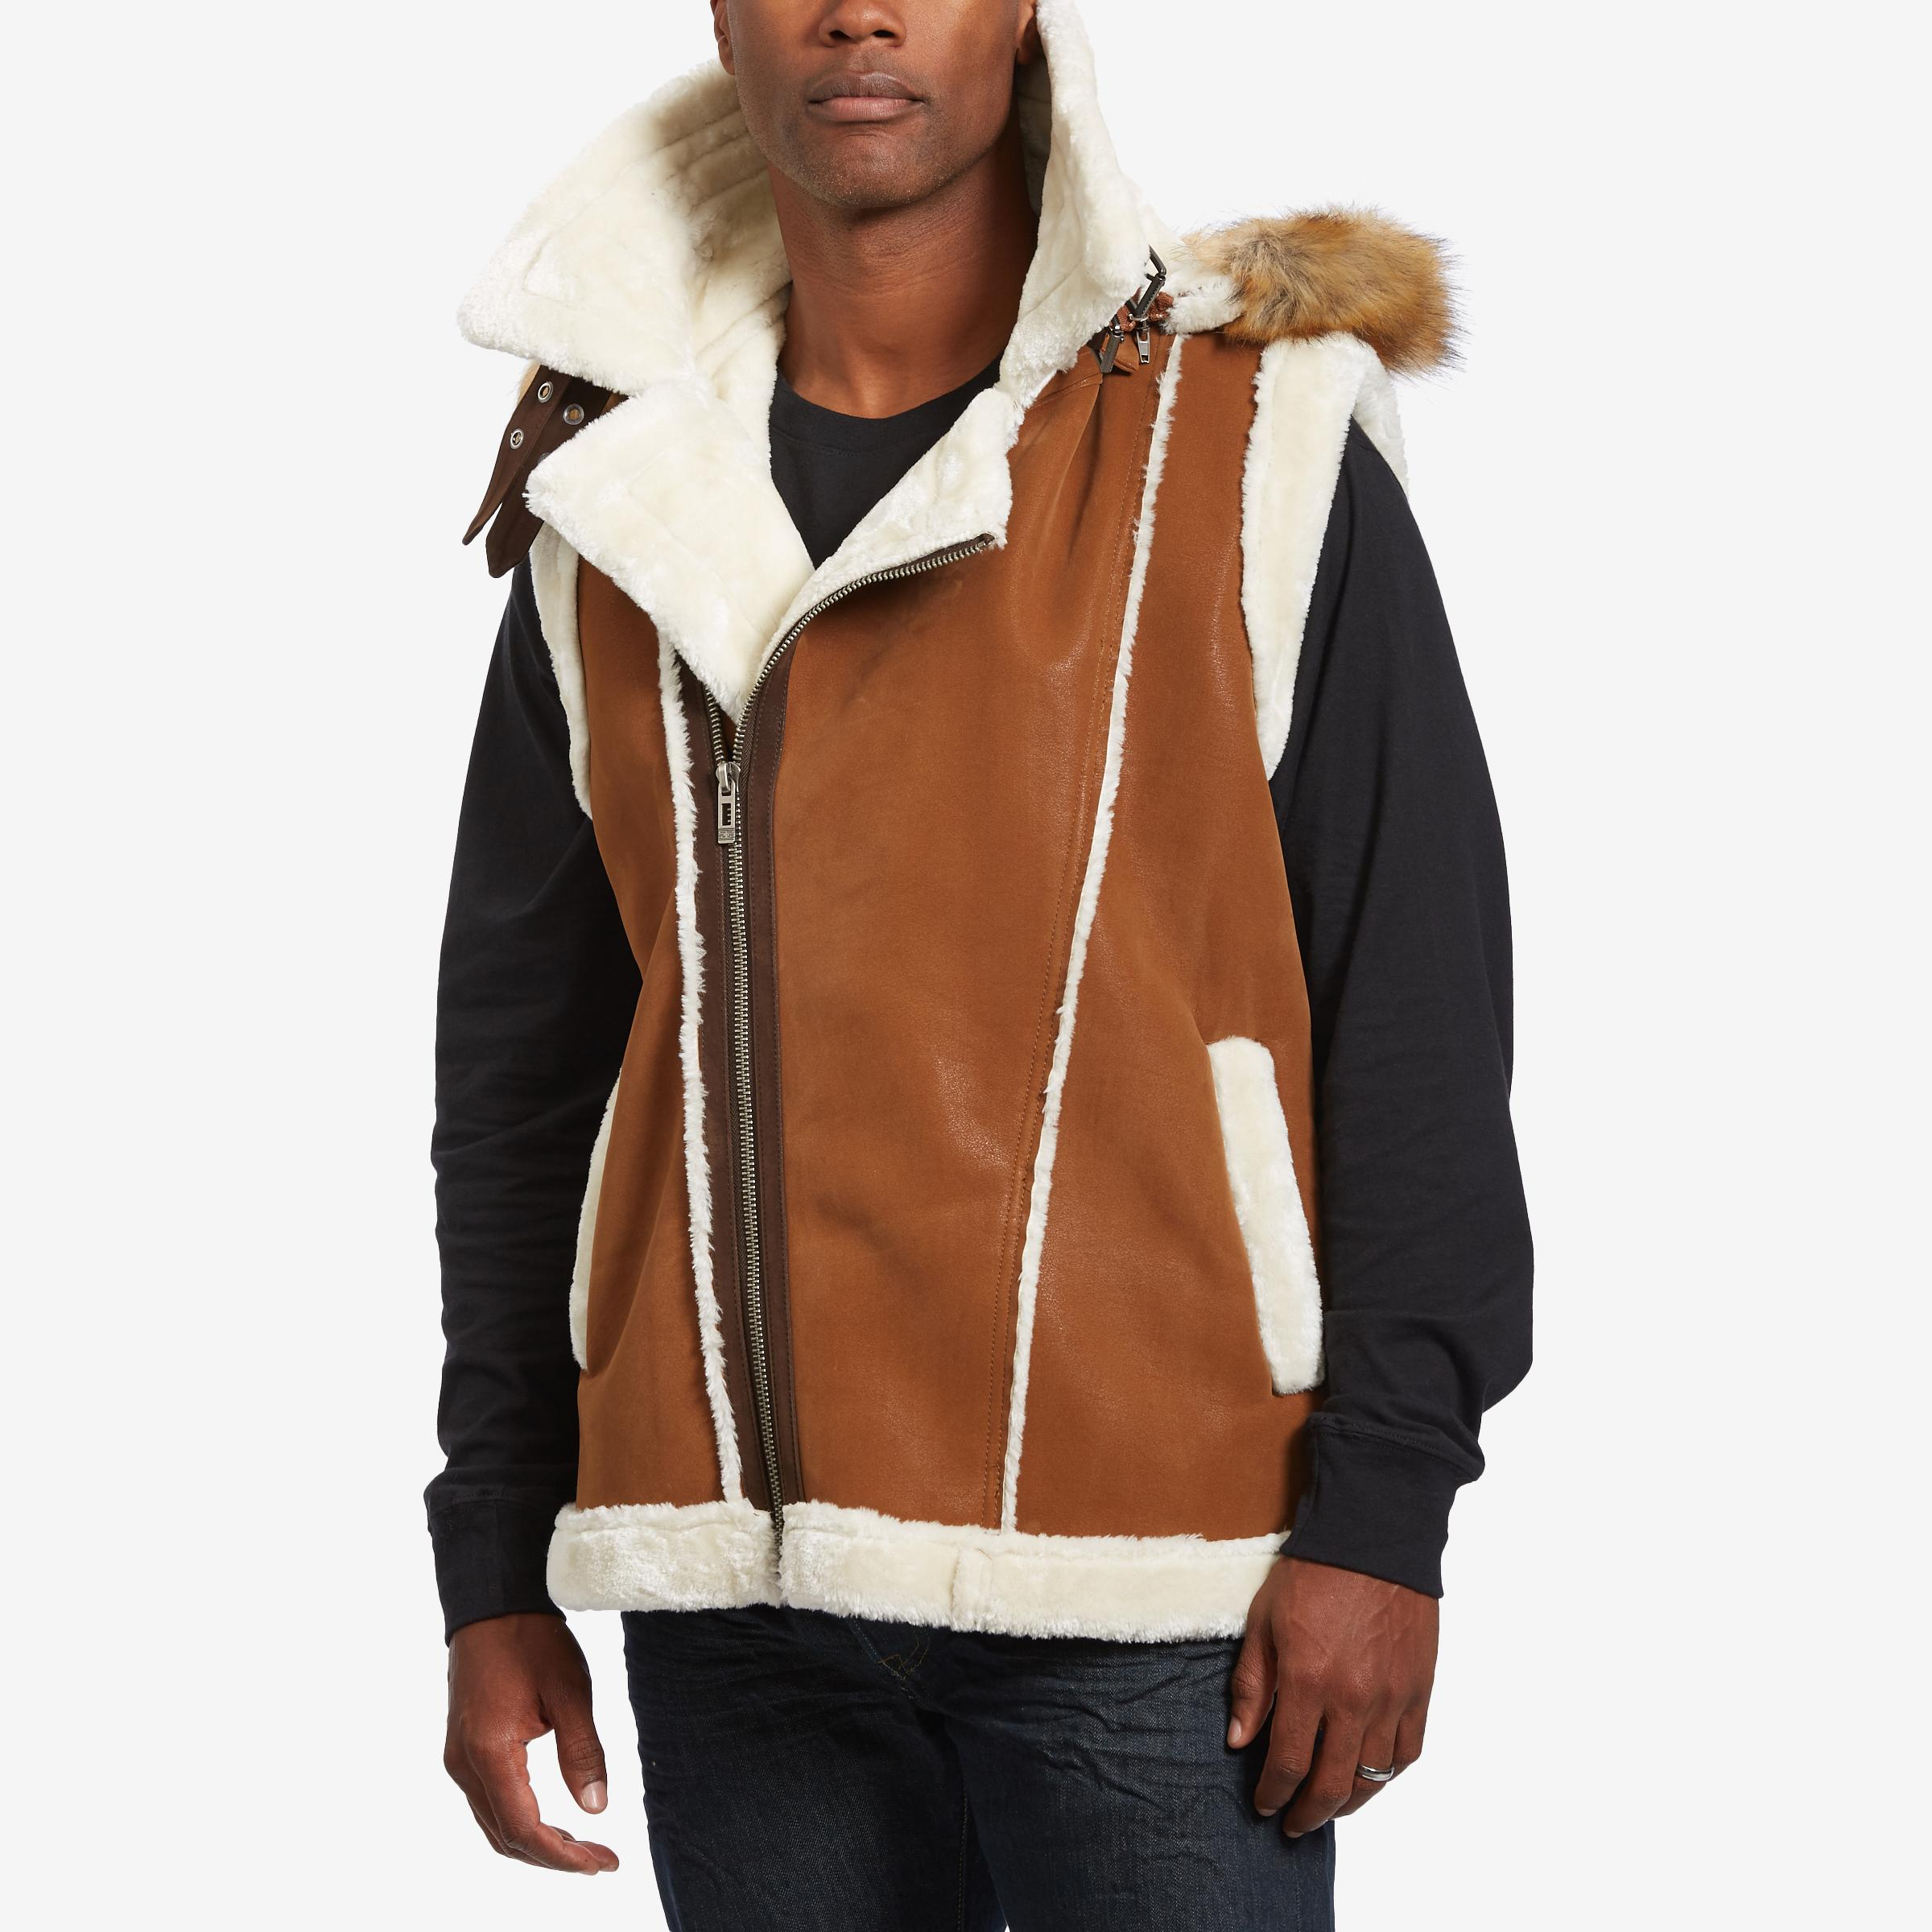 Men's Denali Shearling Vest